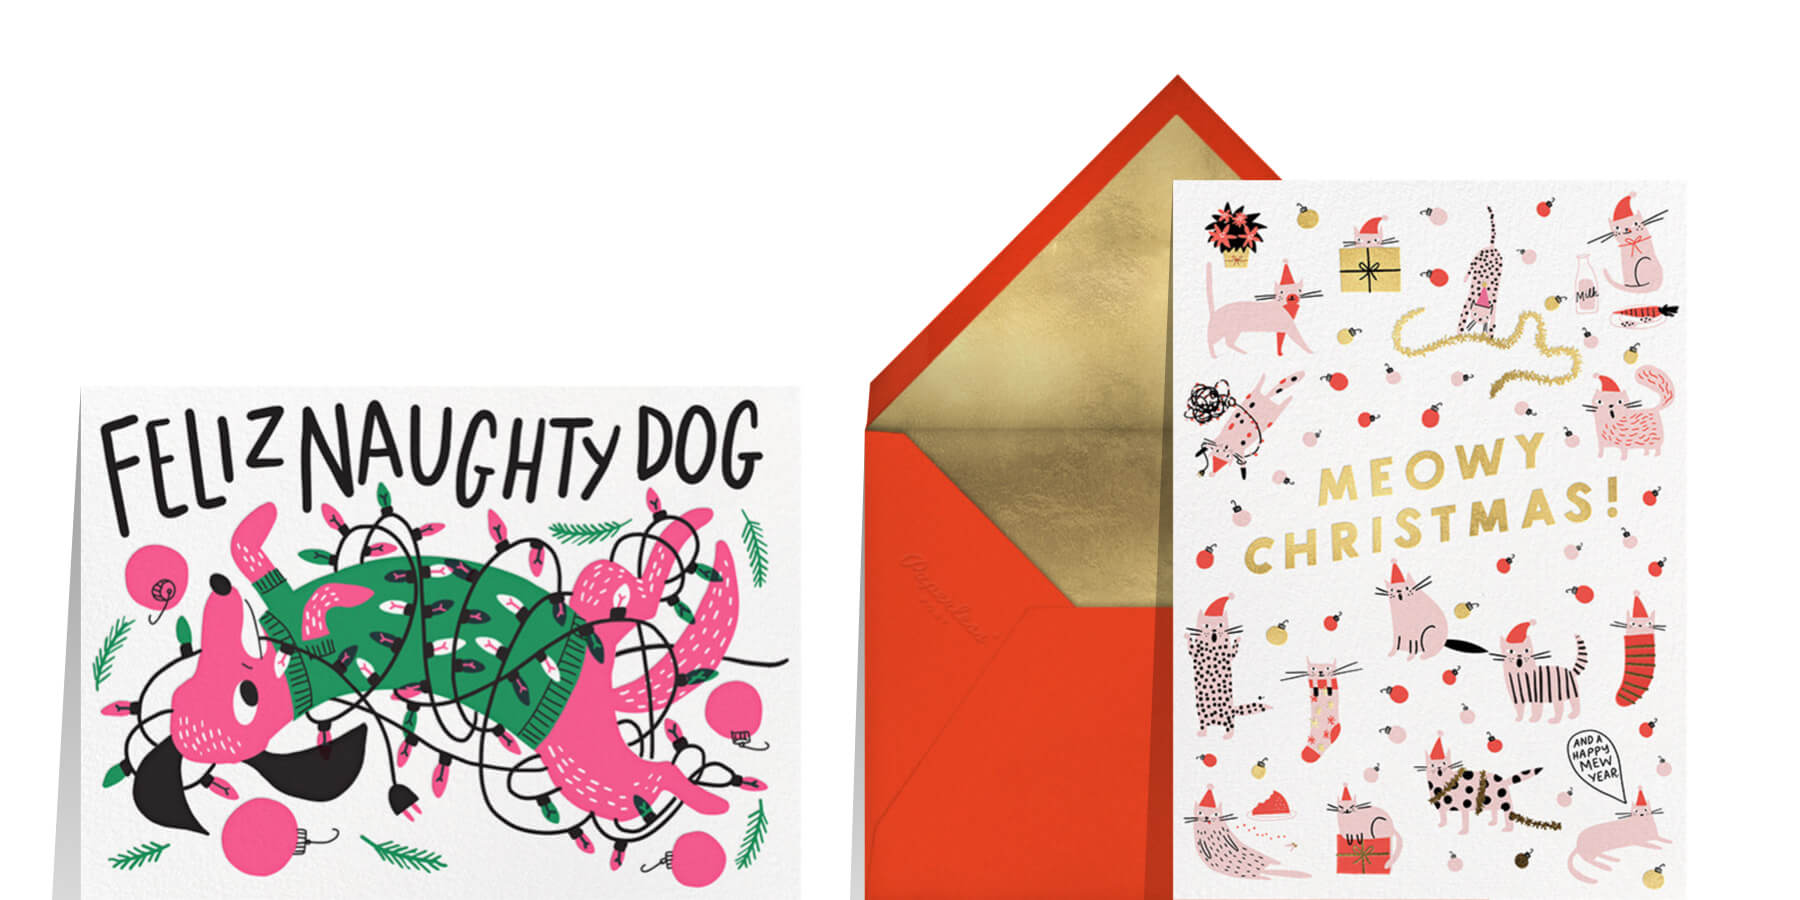 funny Christmas card wording featuring a card that says Feliz Naughty Dog and Meowy Christmas